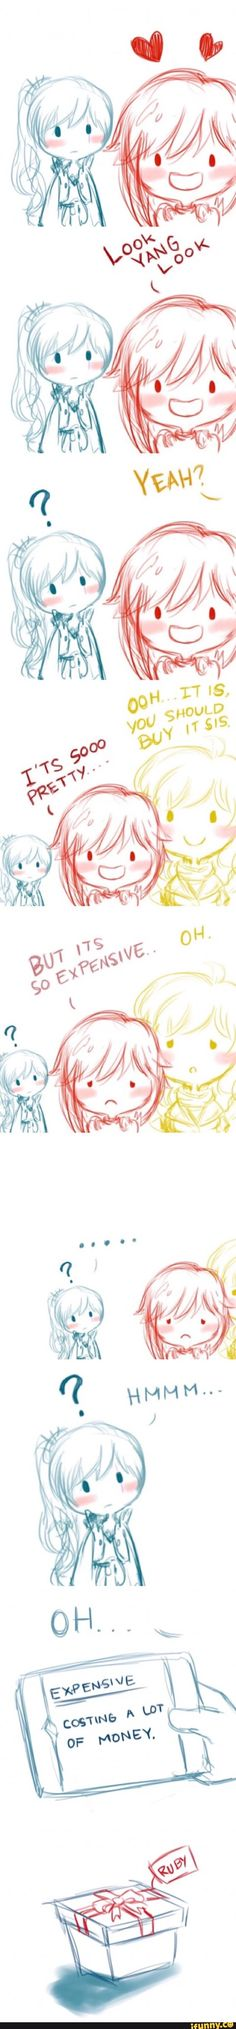 Is everyone just gonna ignore that Weiss had to look up Expensive!?